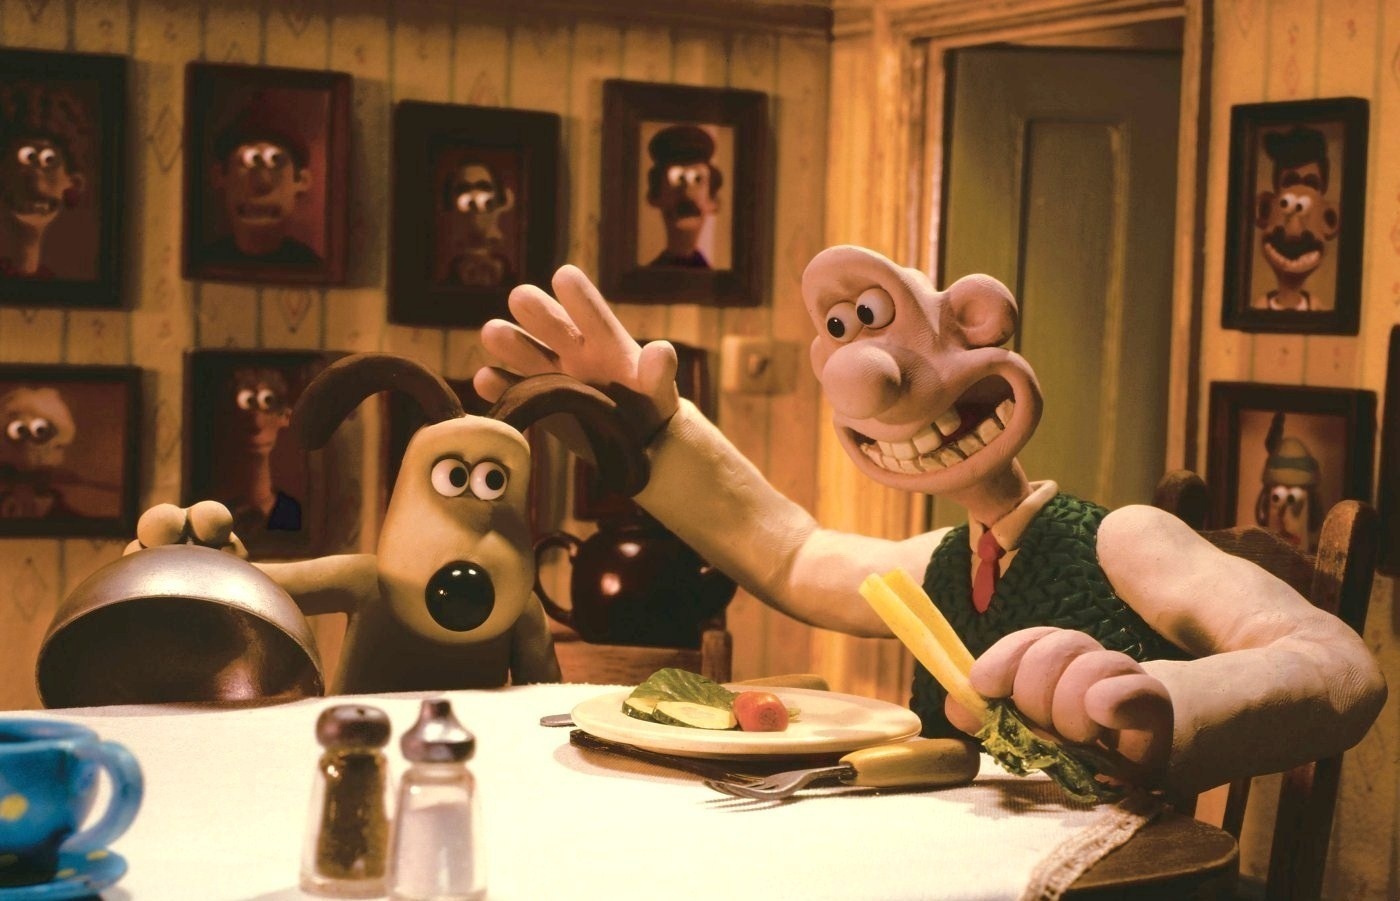 Wallace & Gromit: The Curse of the Were-Rabbit Movie Review